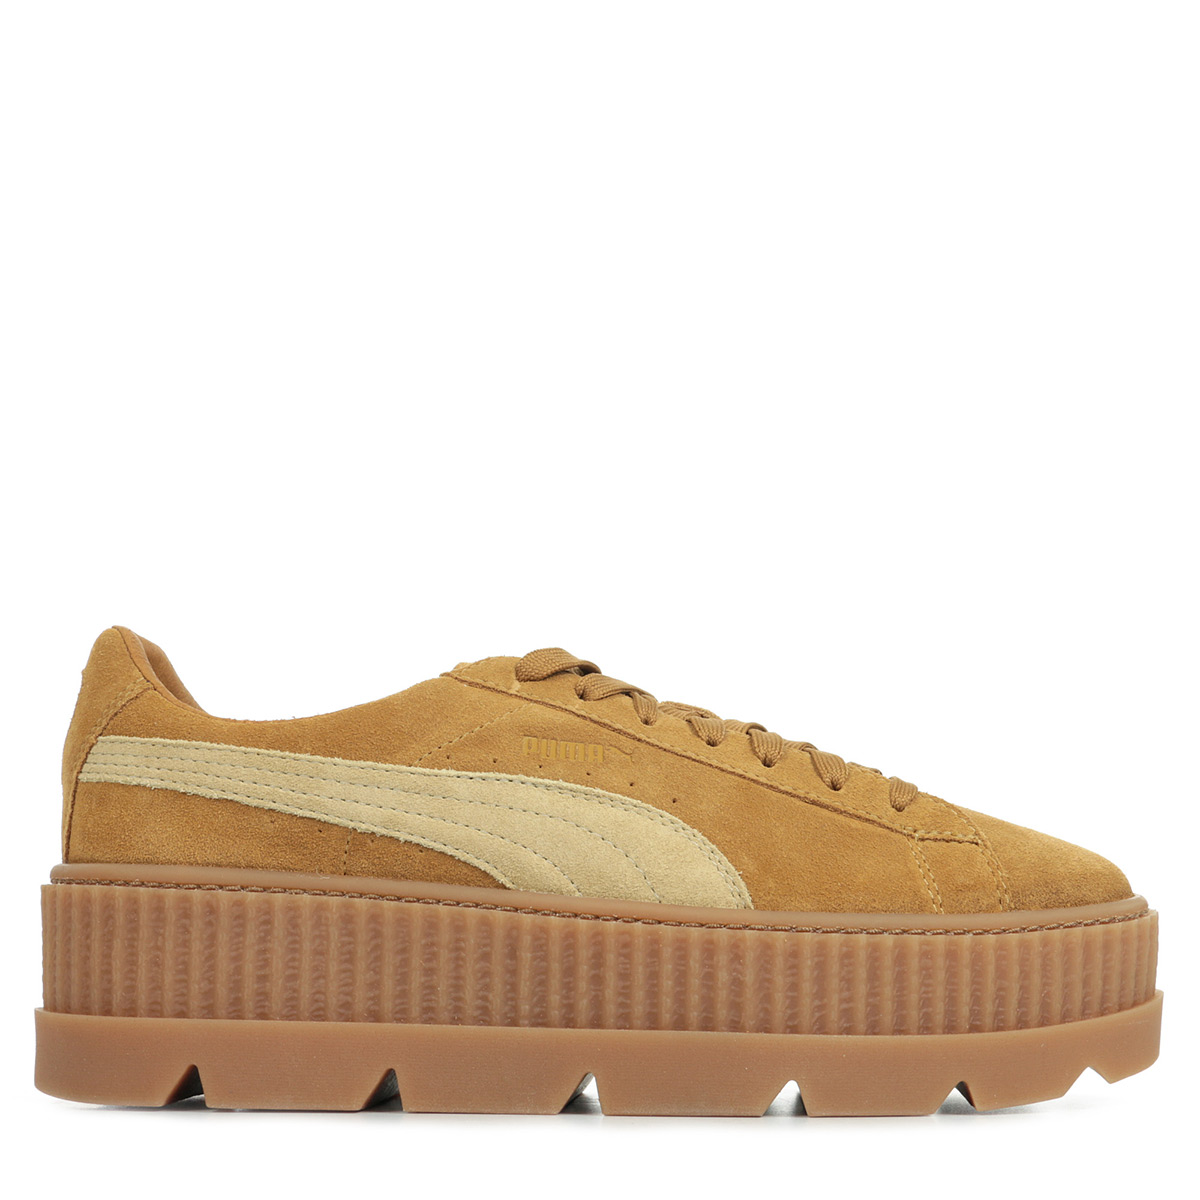 Puma Rihanna Cleated Creeper Suede